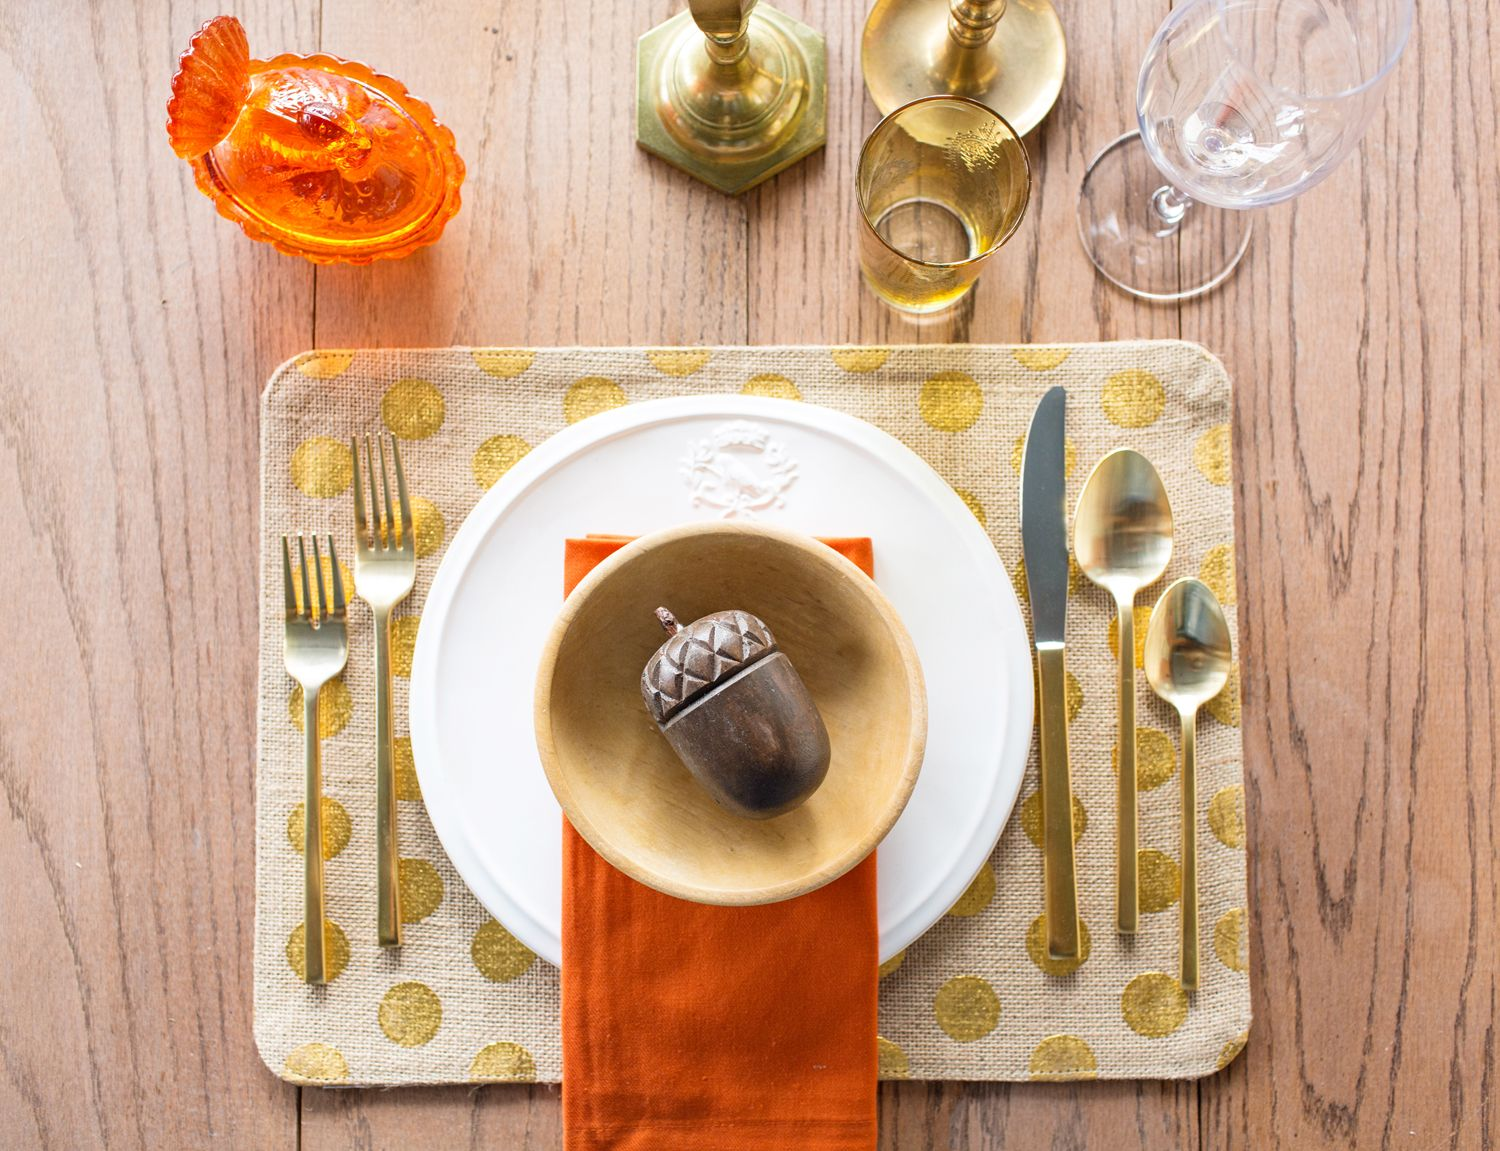 4 rustic chic table setting ideas for | Pinterest | Rustic chic ...